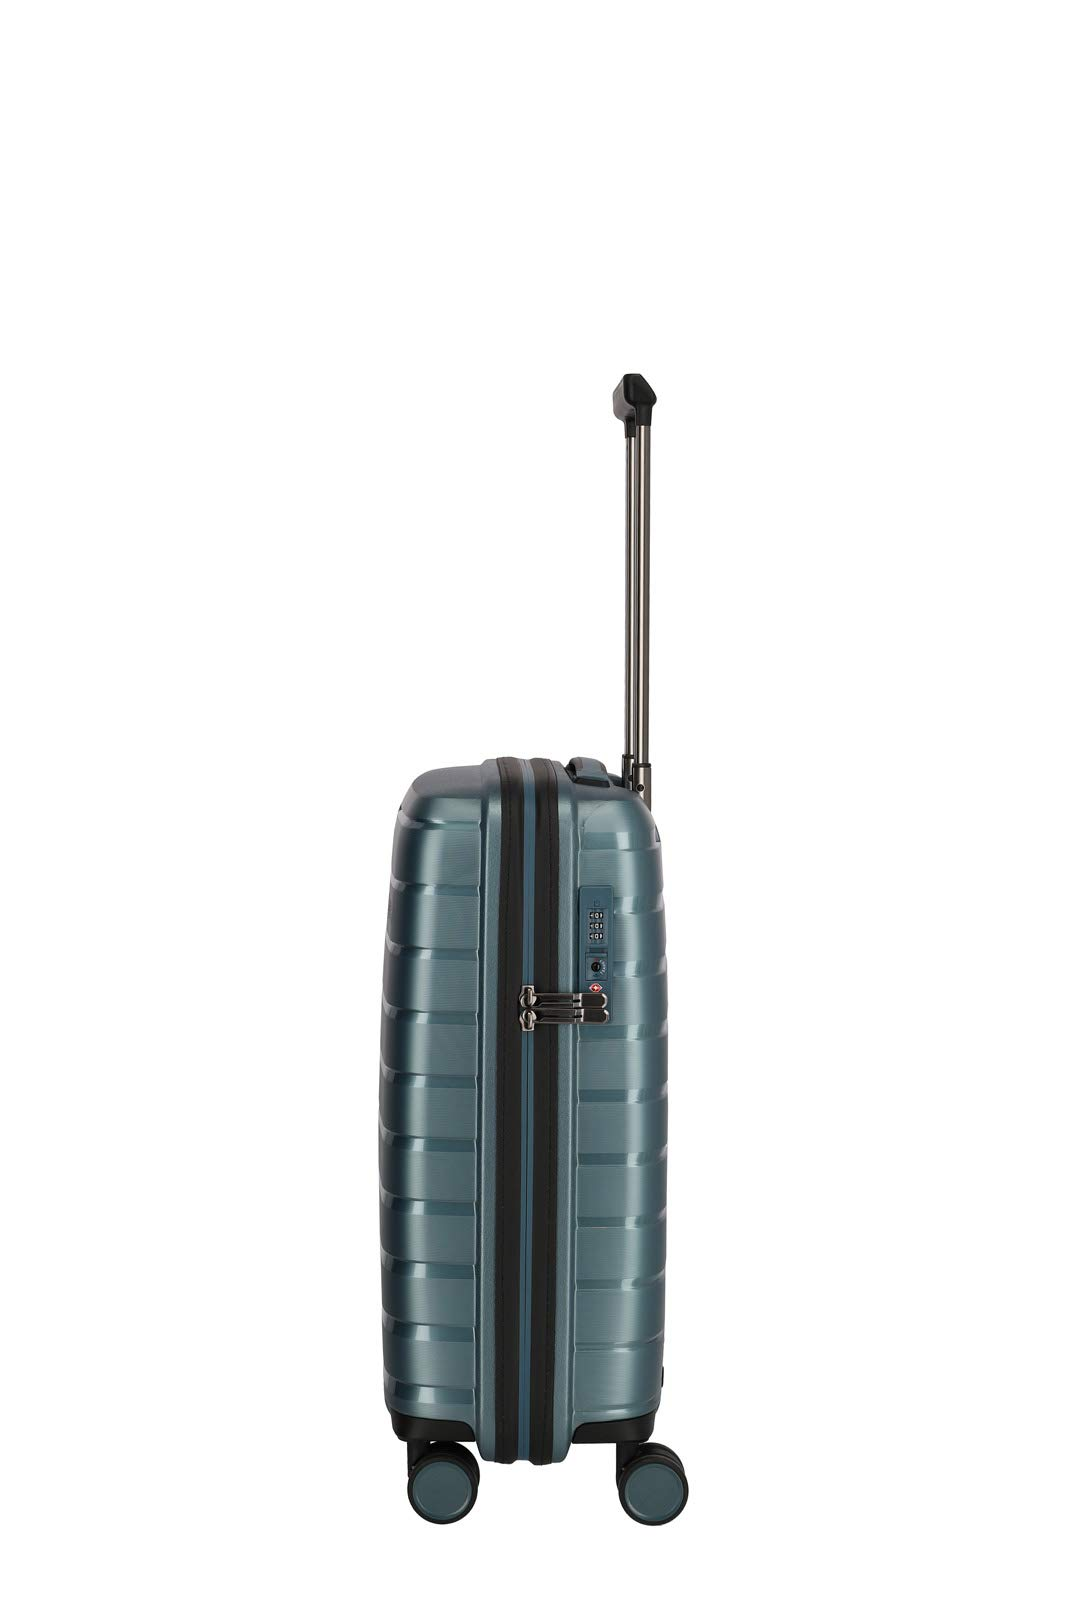 travelite Hartschalen-koffer-Serie «Air Base» Von Travelite In 2 Farben: Unverwüstlich, Funktional, Cool Equipaje de Mano, 55 Centimeters